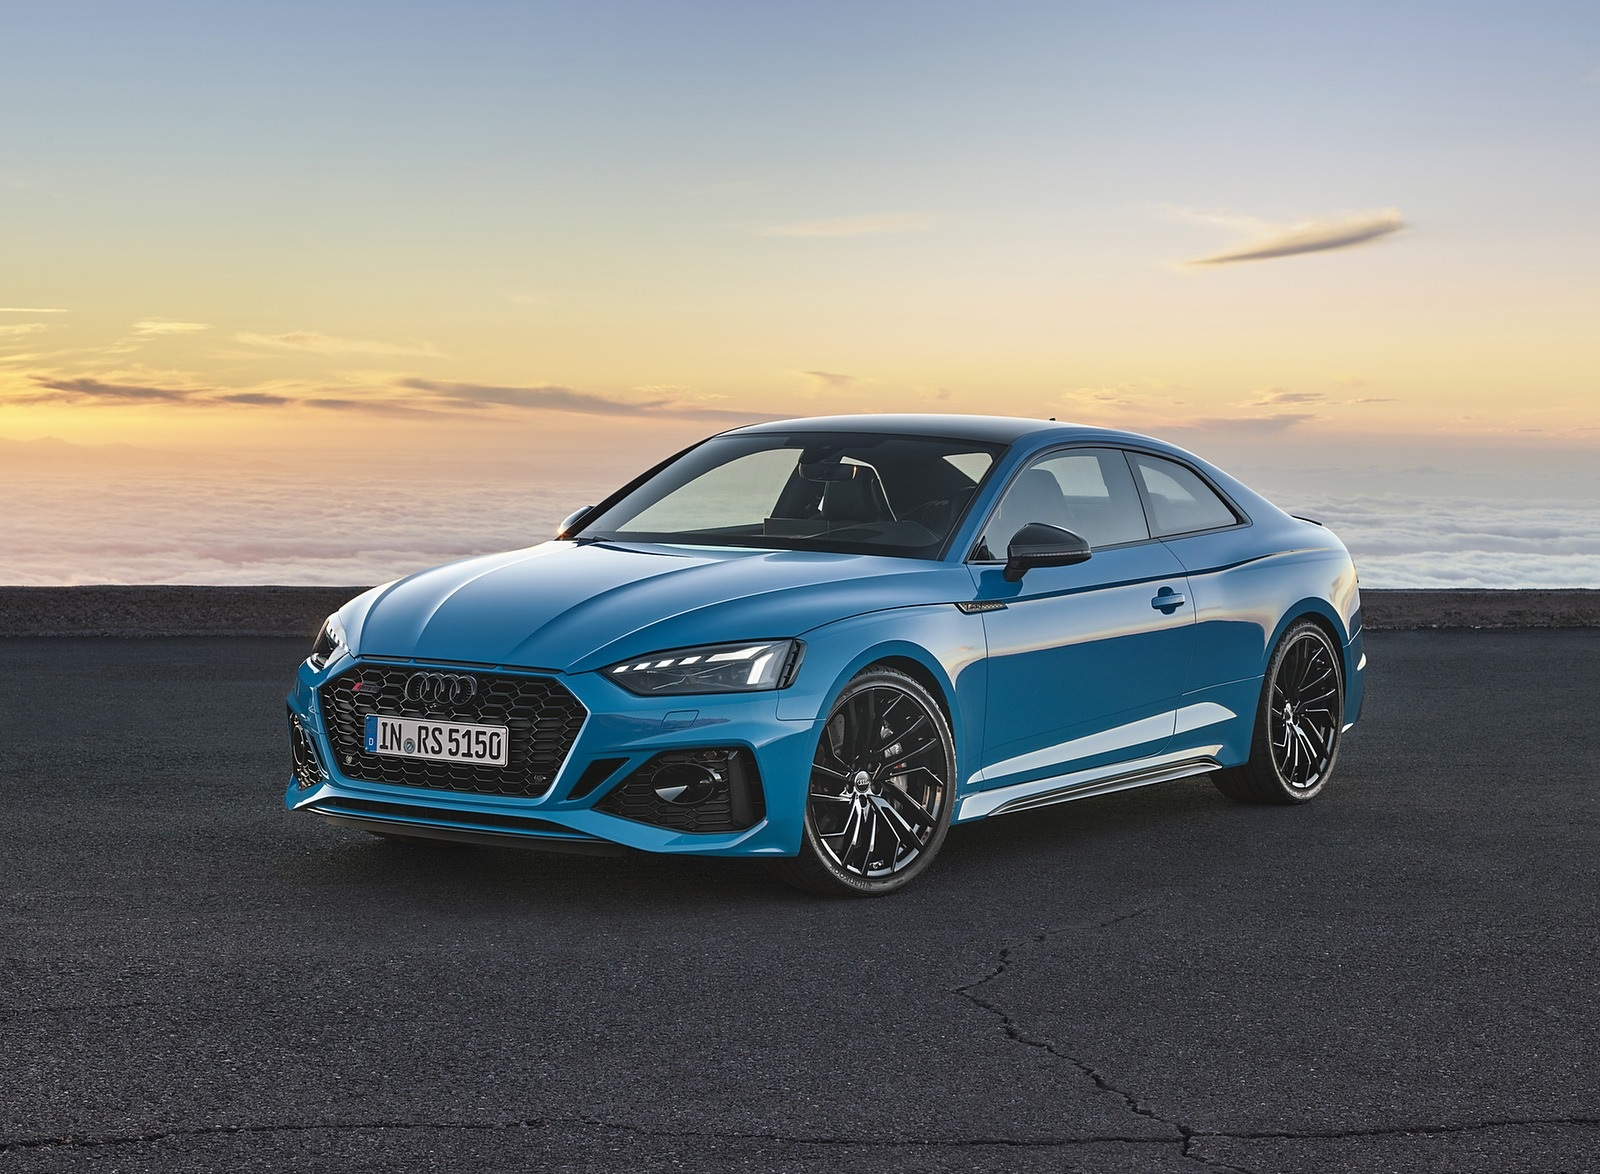 2020 Audi RS 5 Coupe (Color: Turbo Blue) Front Three-Quarter Wallpapers (6)